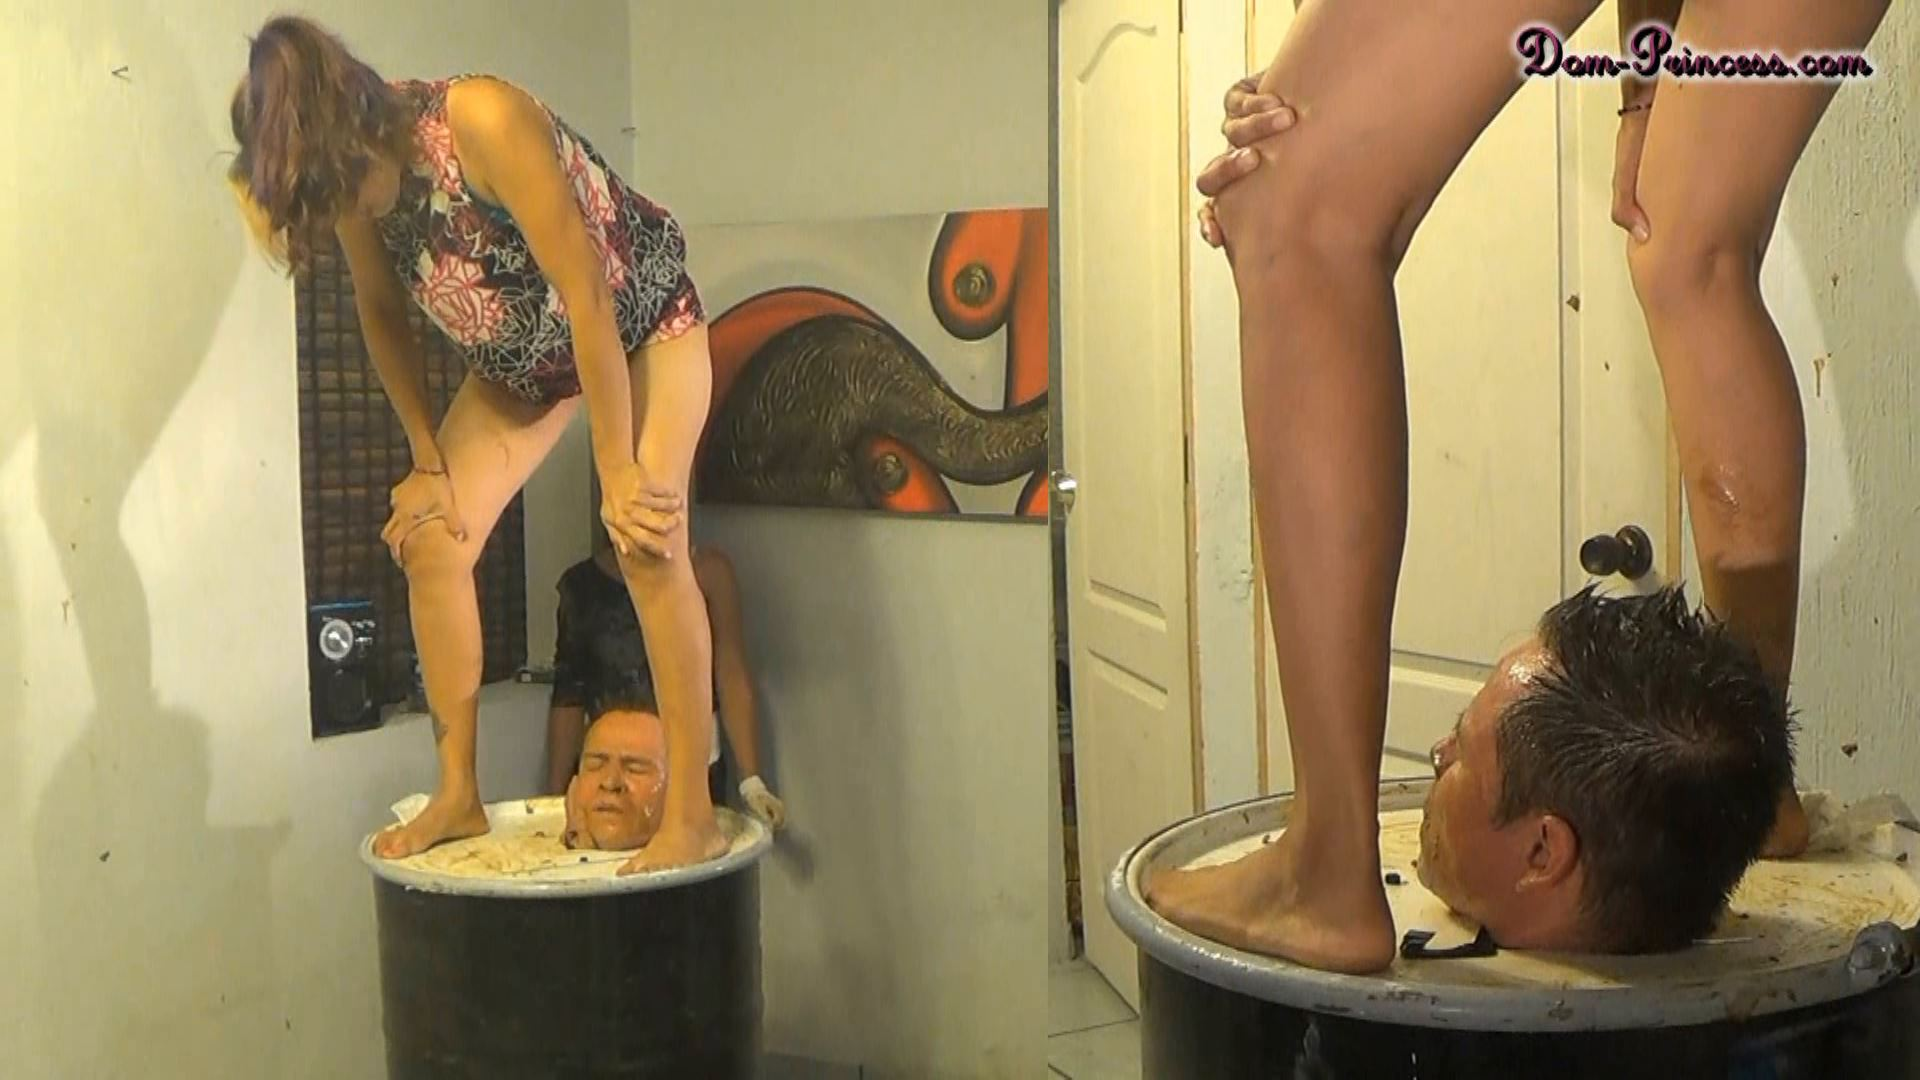 [DOM-PRINCESS] The Face Slapping Support Part 5 Christine [FULL HD][1080p][WMV]